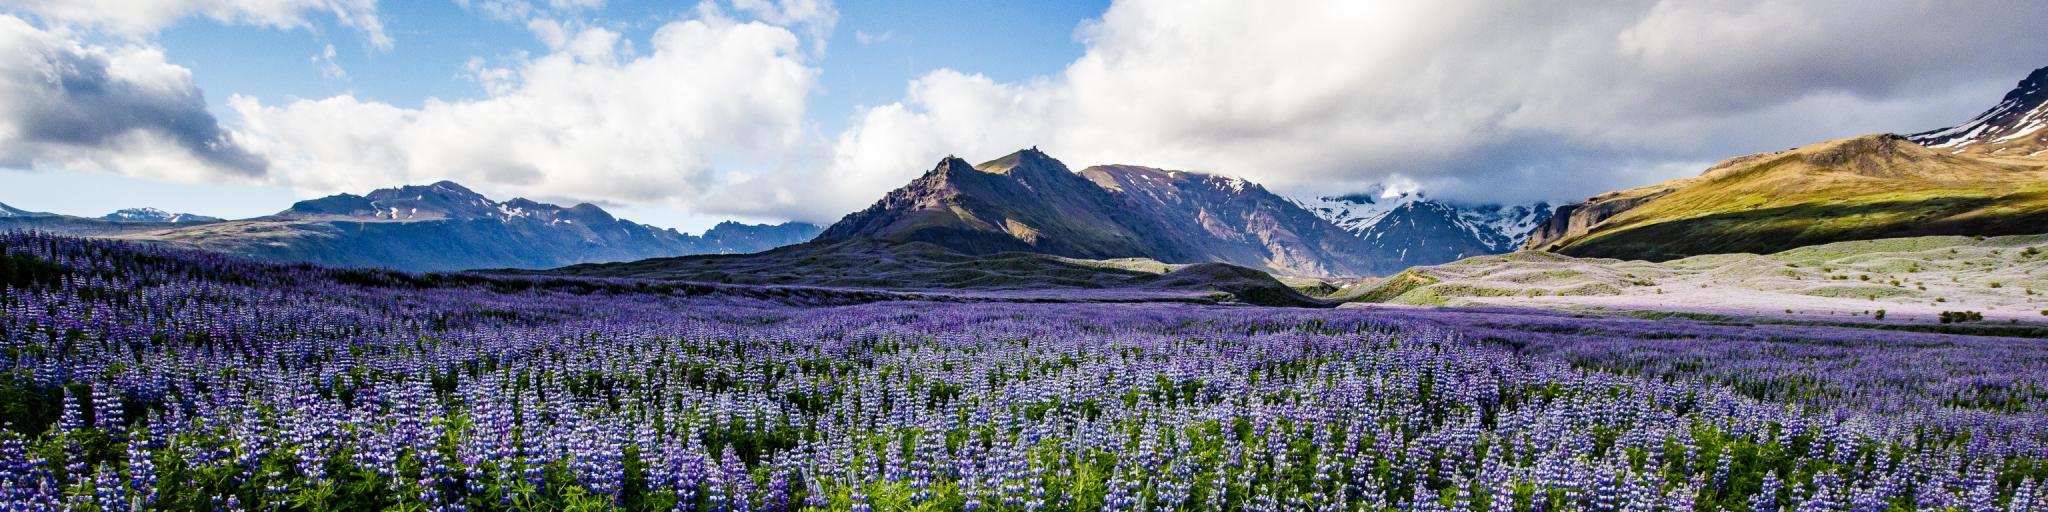 Best time to go to Iceland is June to August when the days are longest